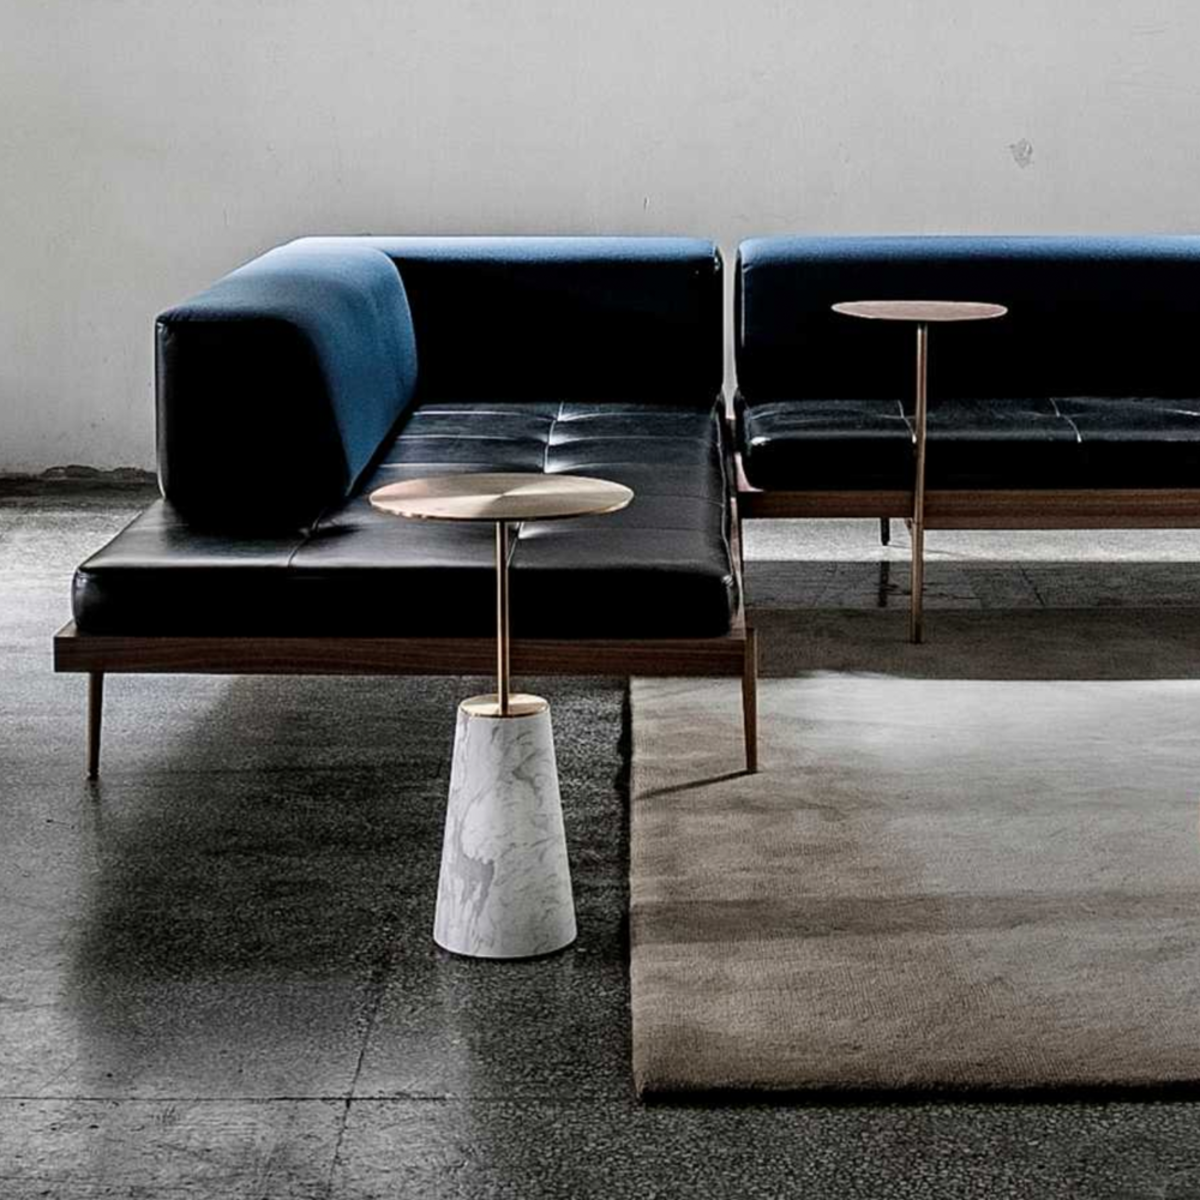 A photo of Bund side table with a sofa behind